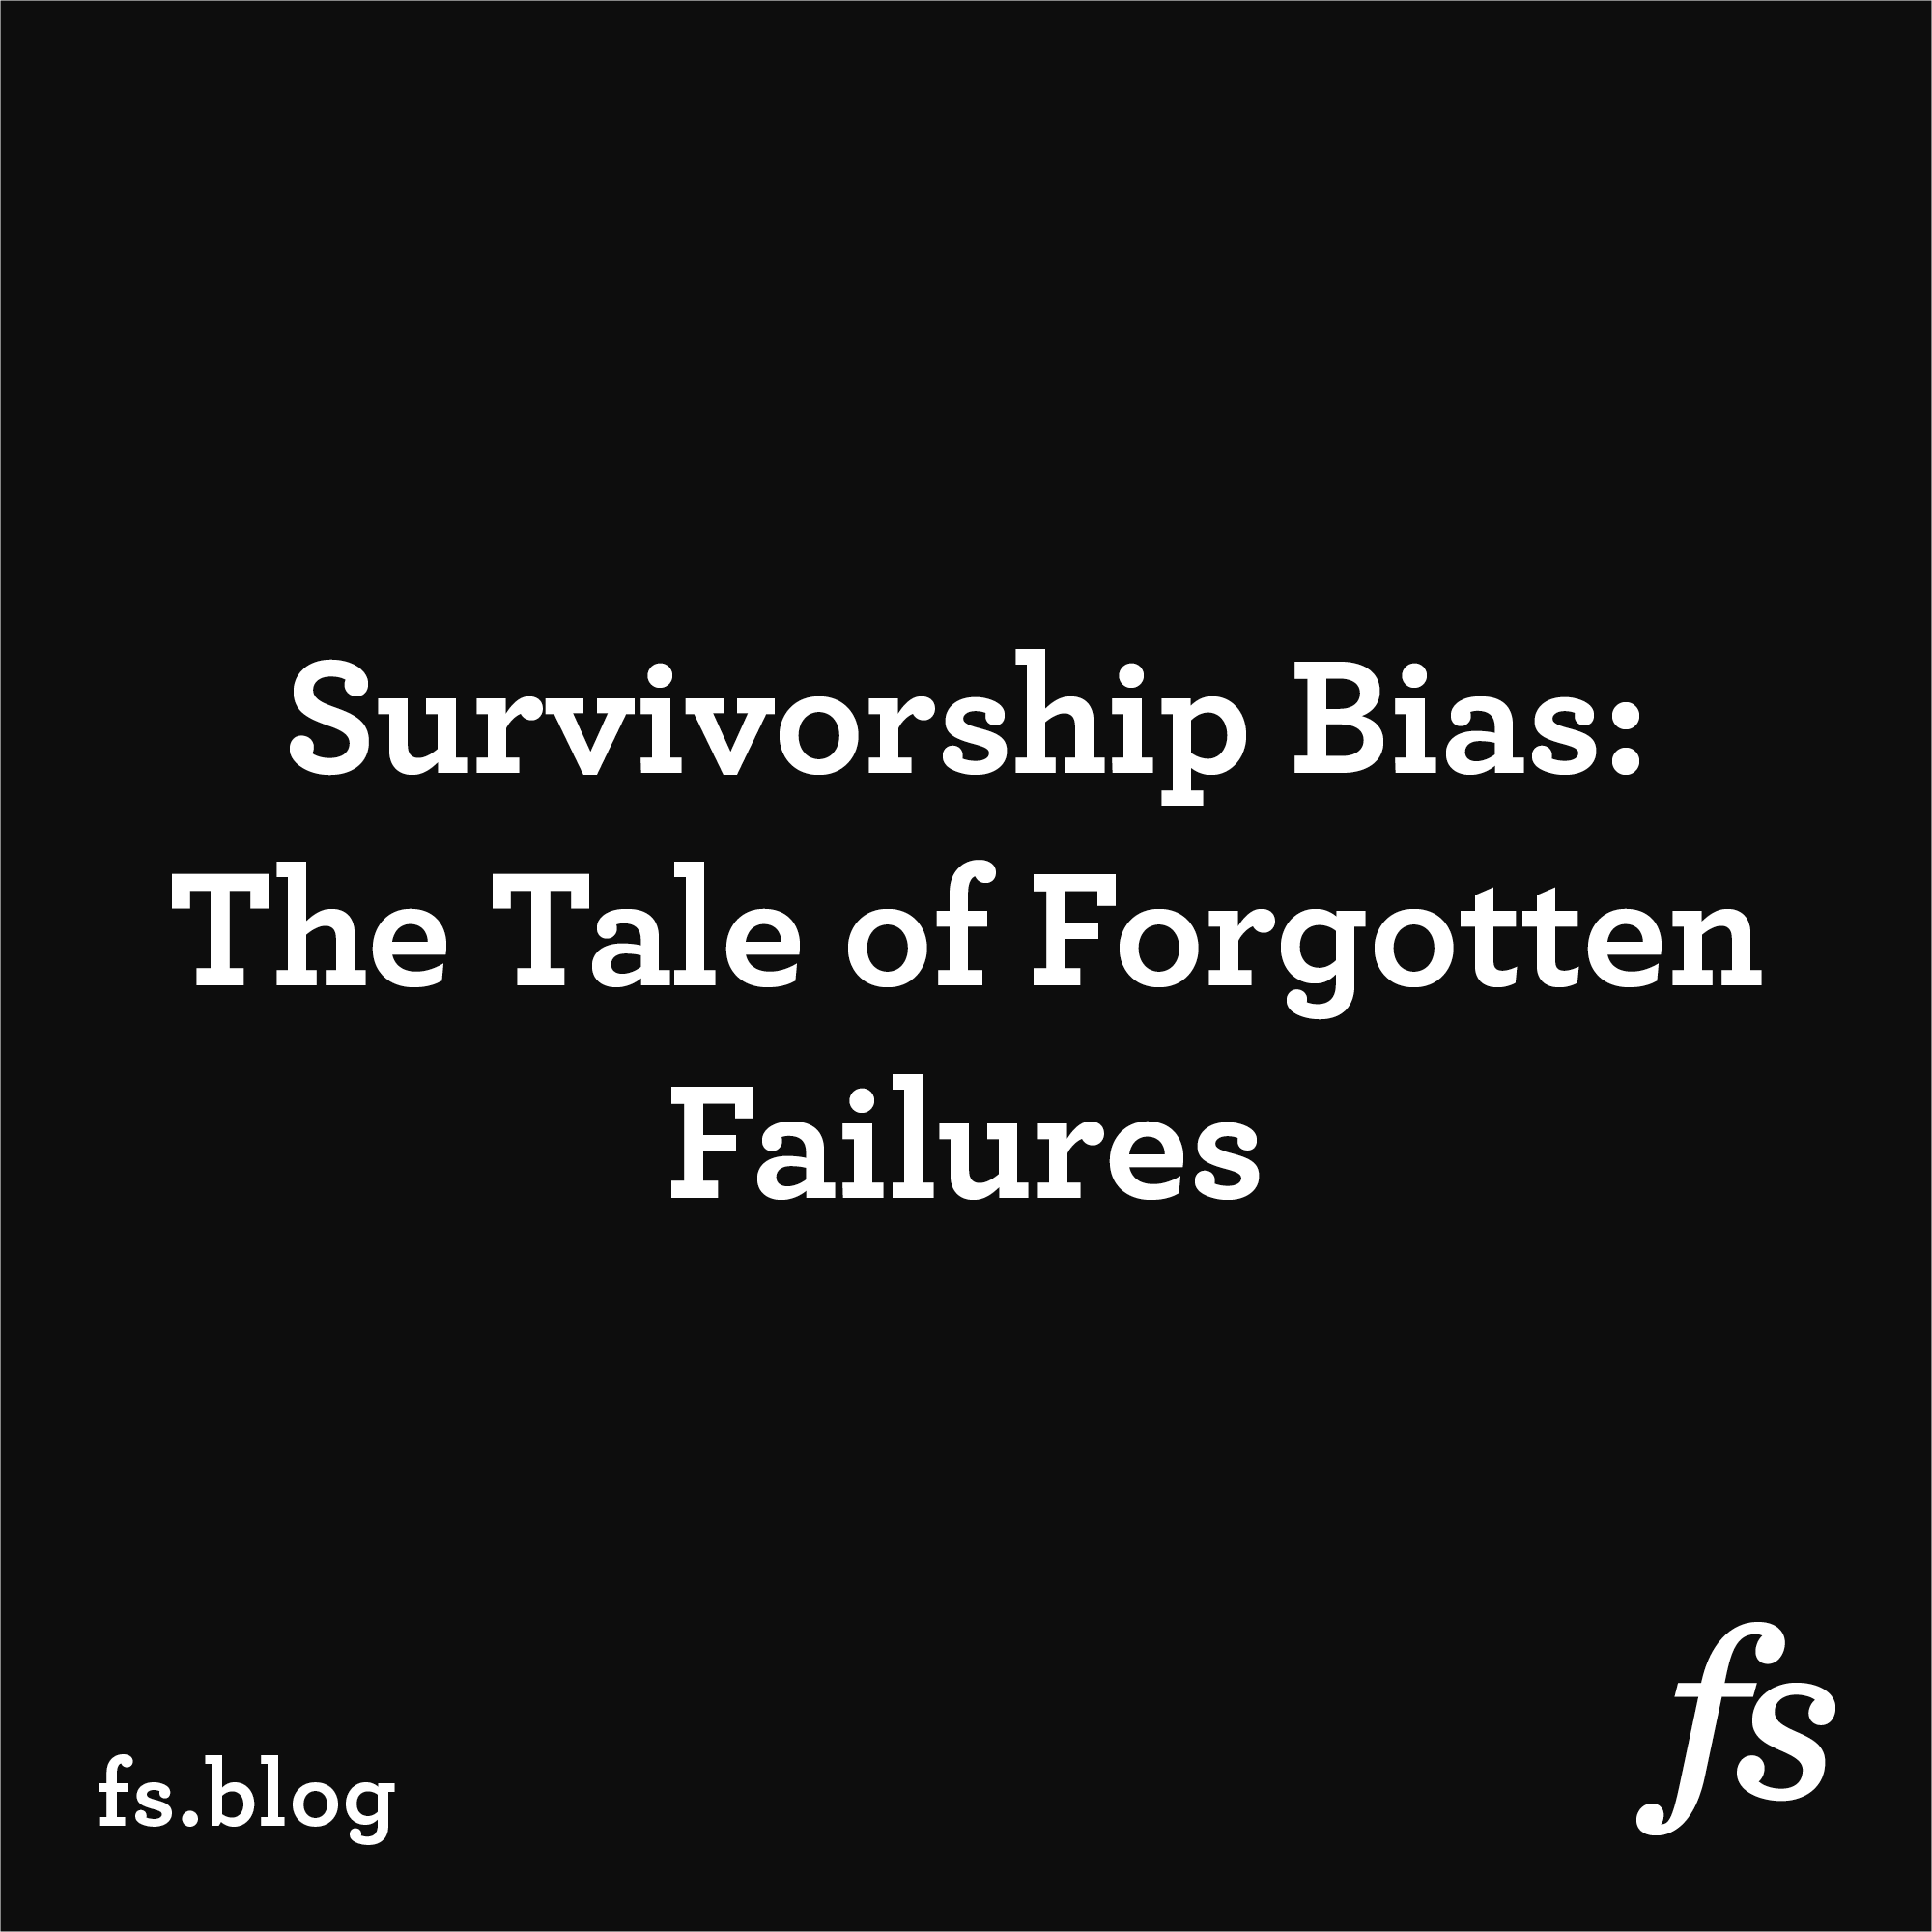 Survivorship Bias: The Tale of Forgotten Failures